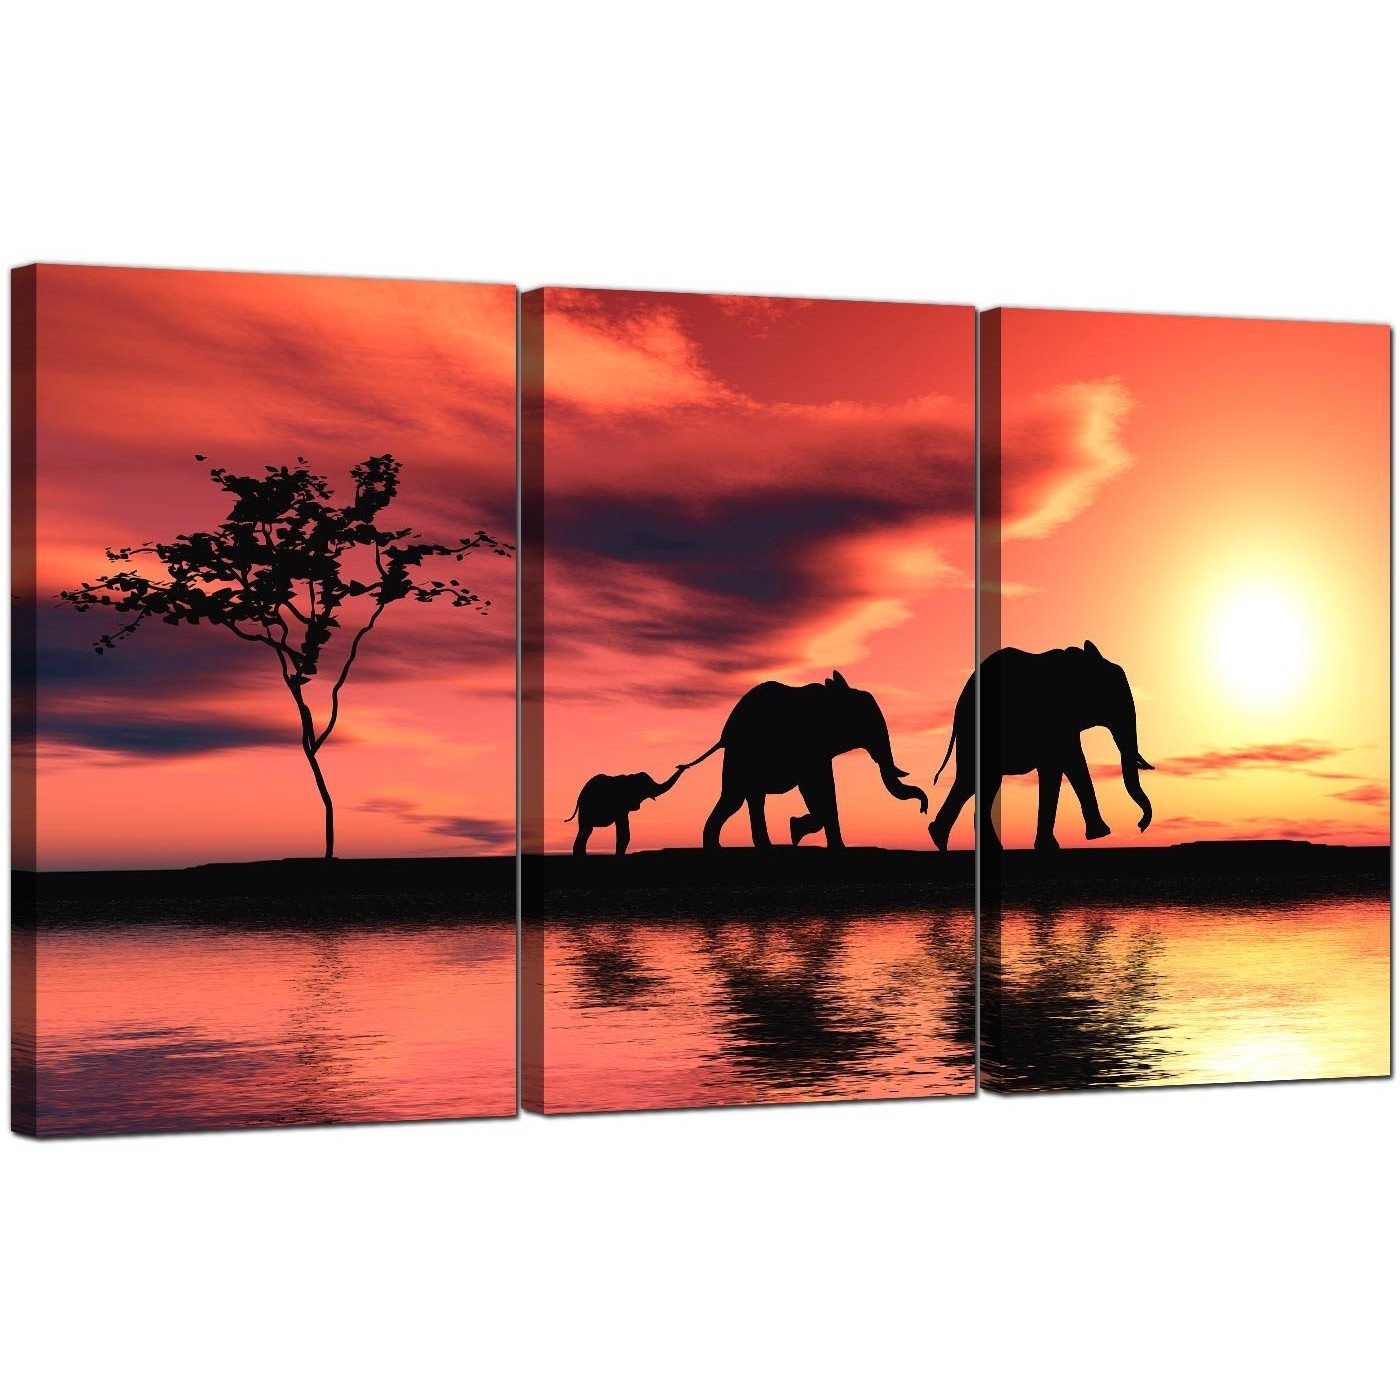 Elephants Canvas Prints Set Of 3 For Your Living Room Inside Elephant Canvas Wall Art (Photo 1 of 20)